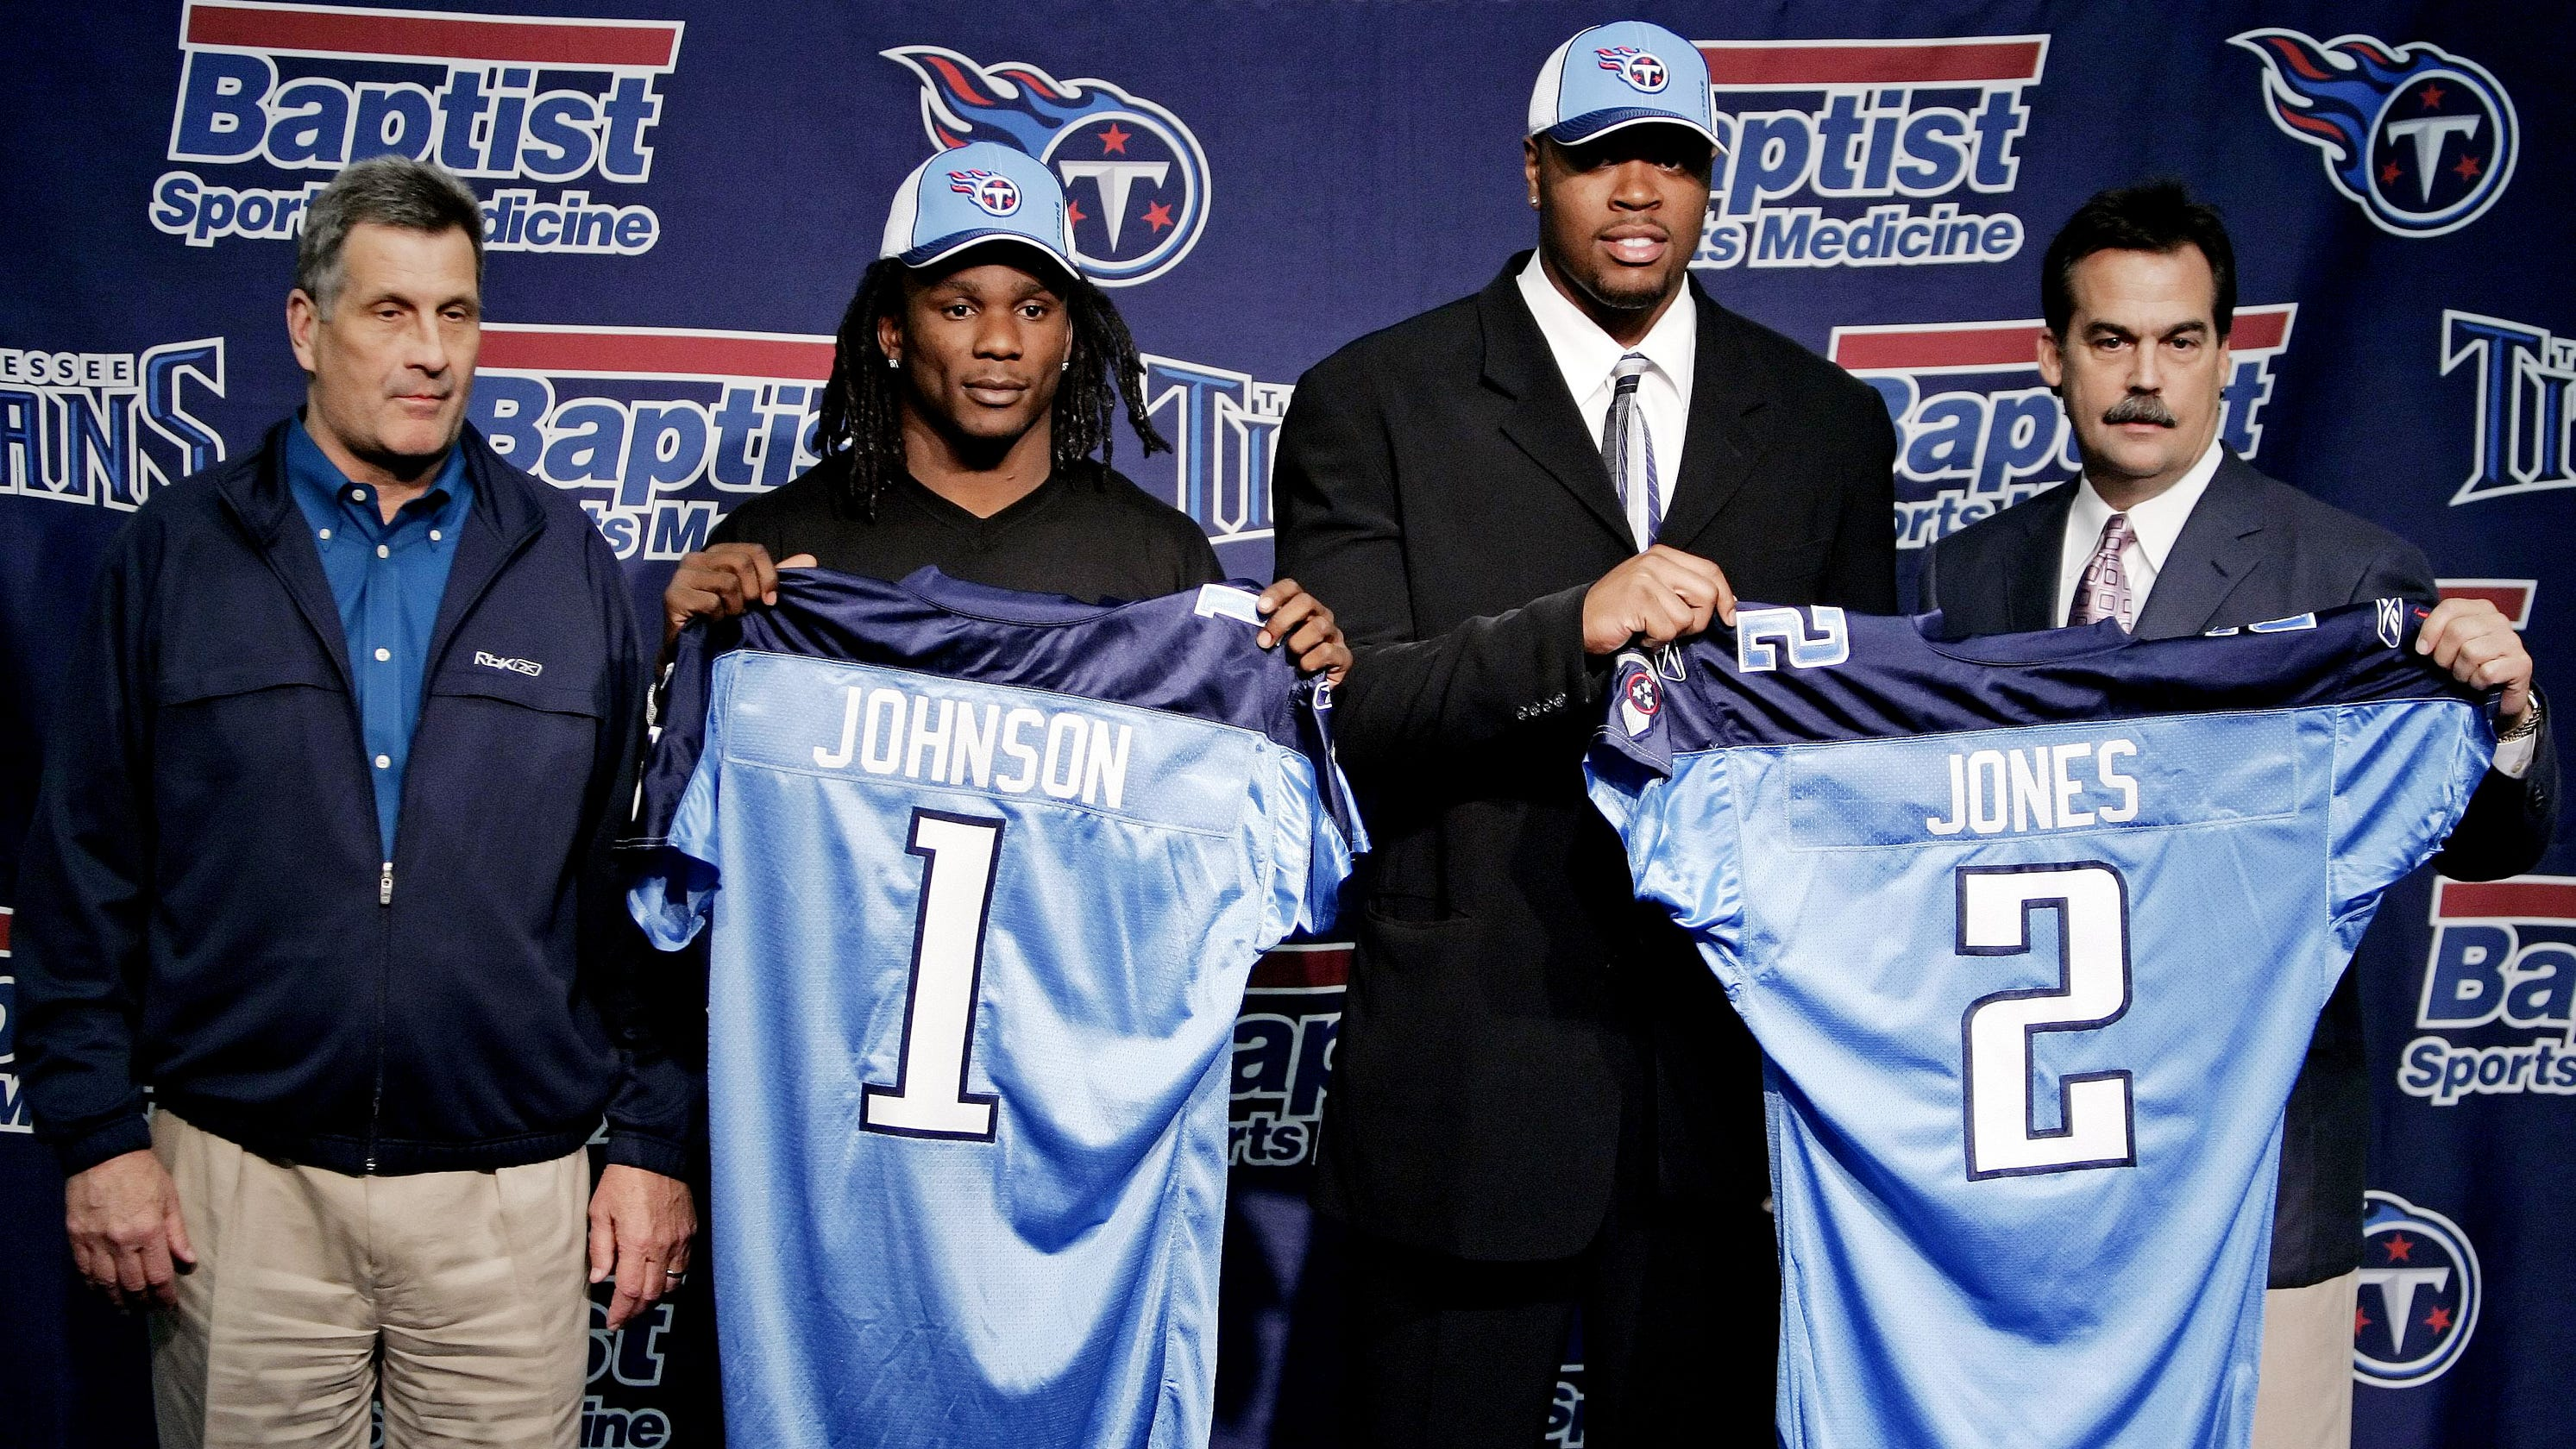 f12b083db709 2019 NFL draft  Ranking the 5 best and worst picks in Titans history